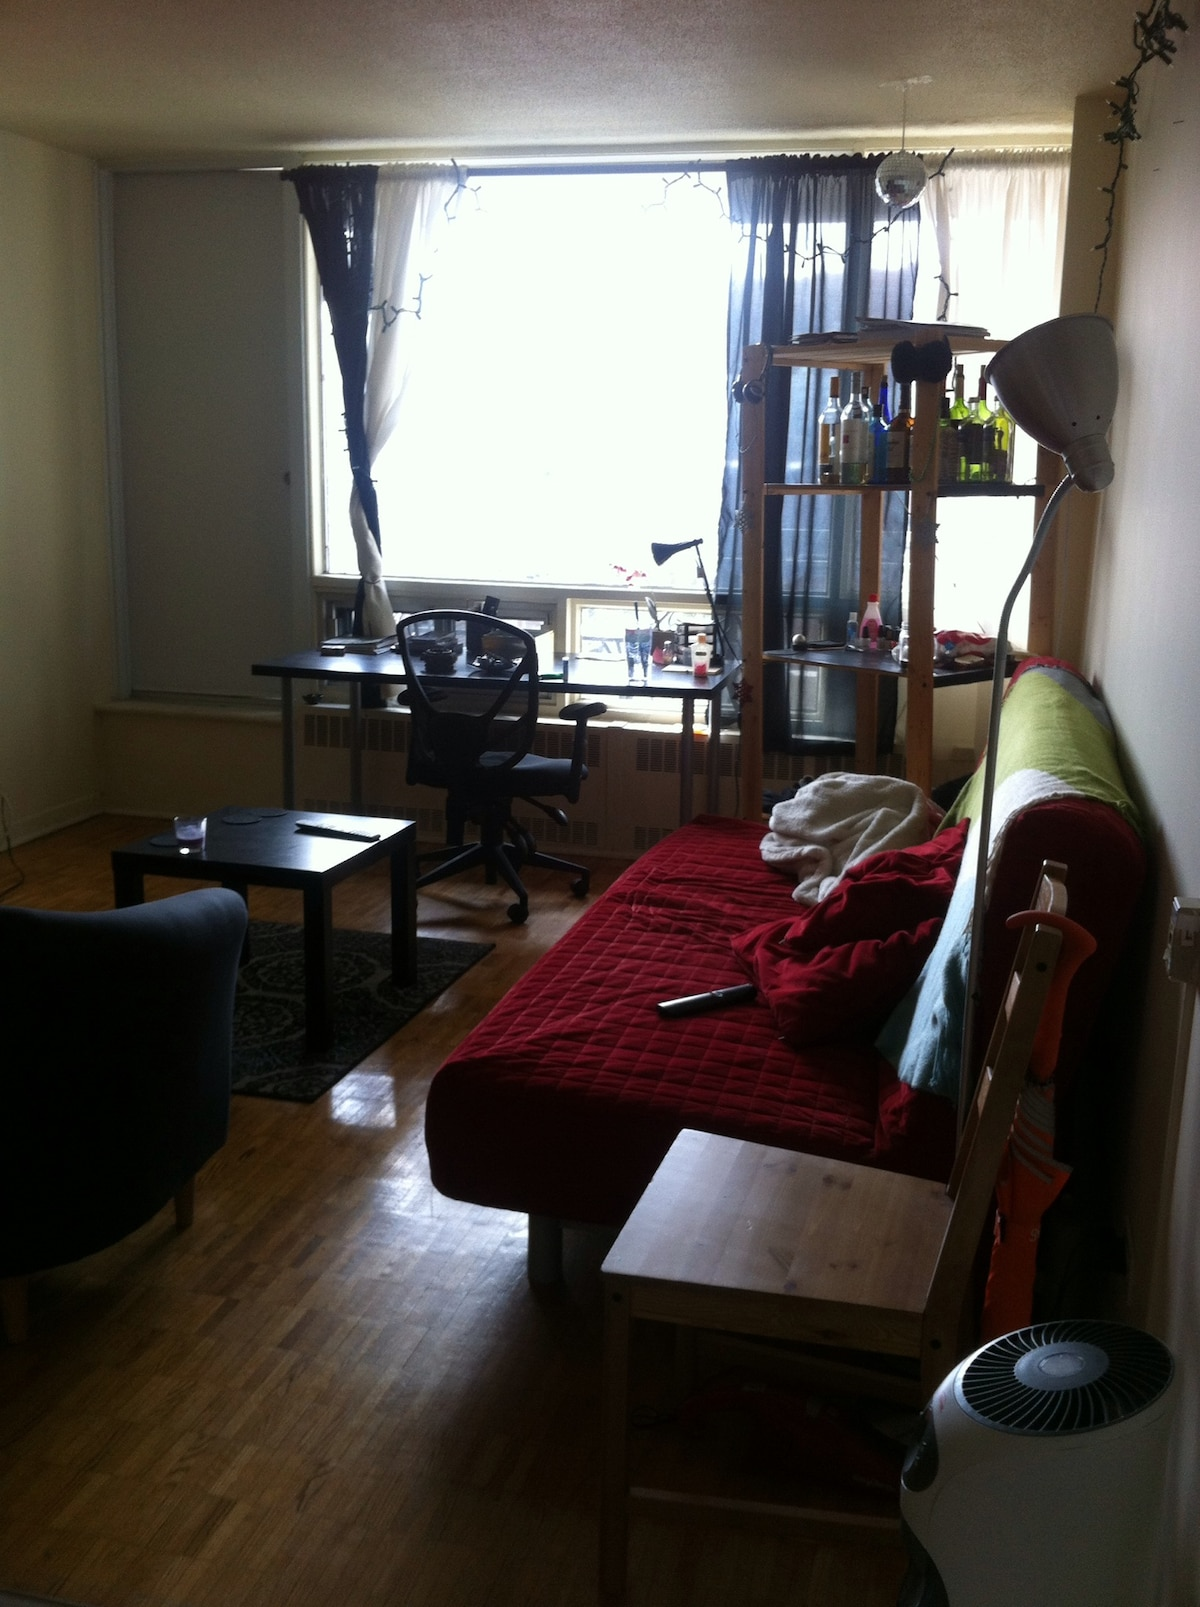 Bedroom for Rent in downtown mtl